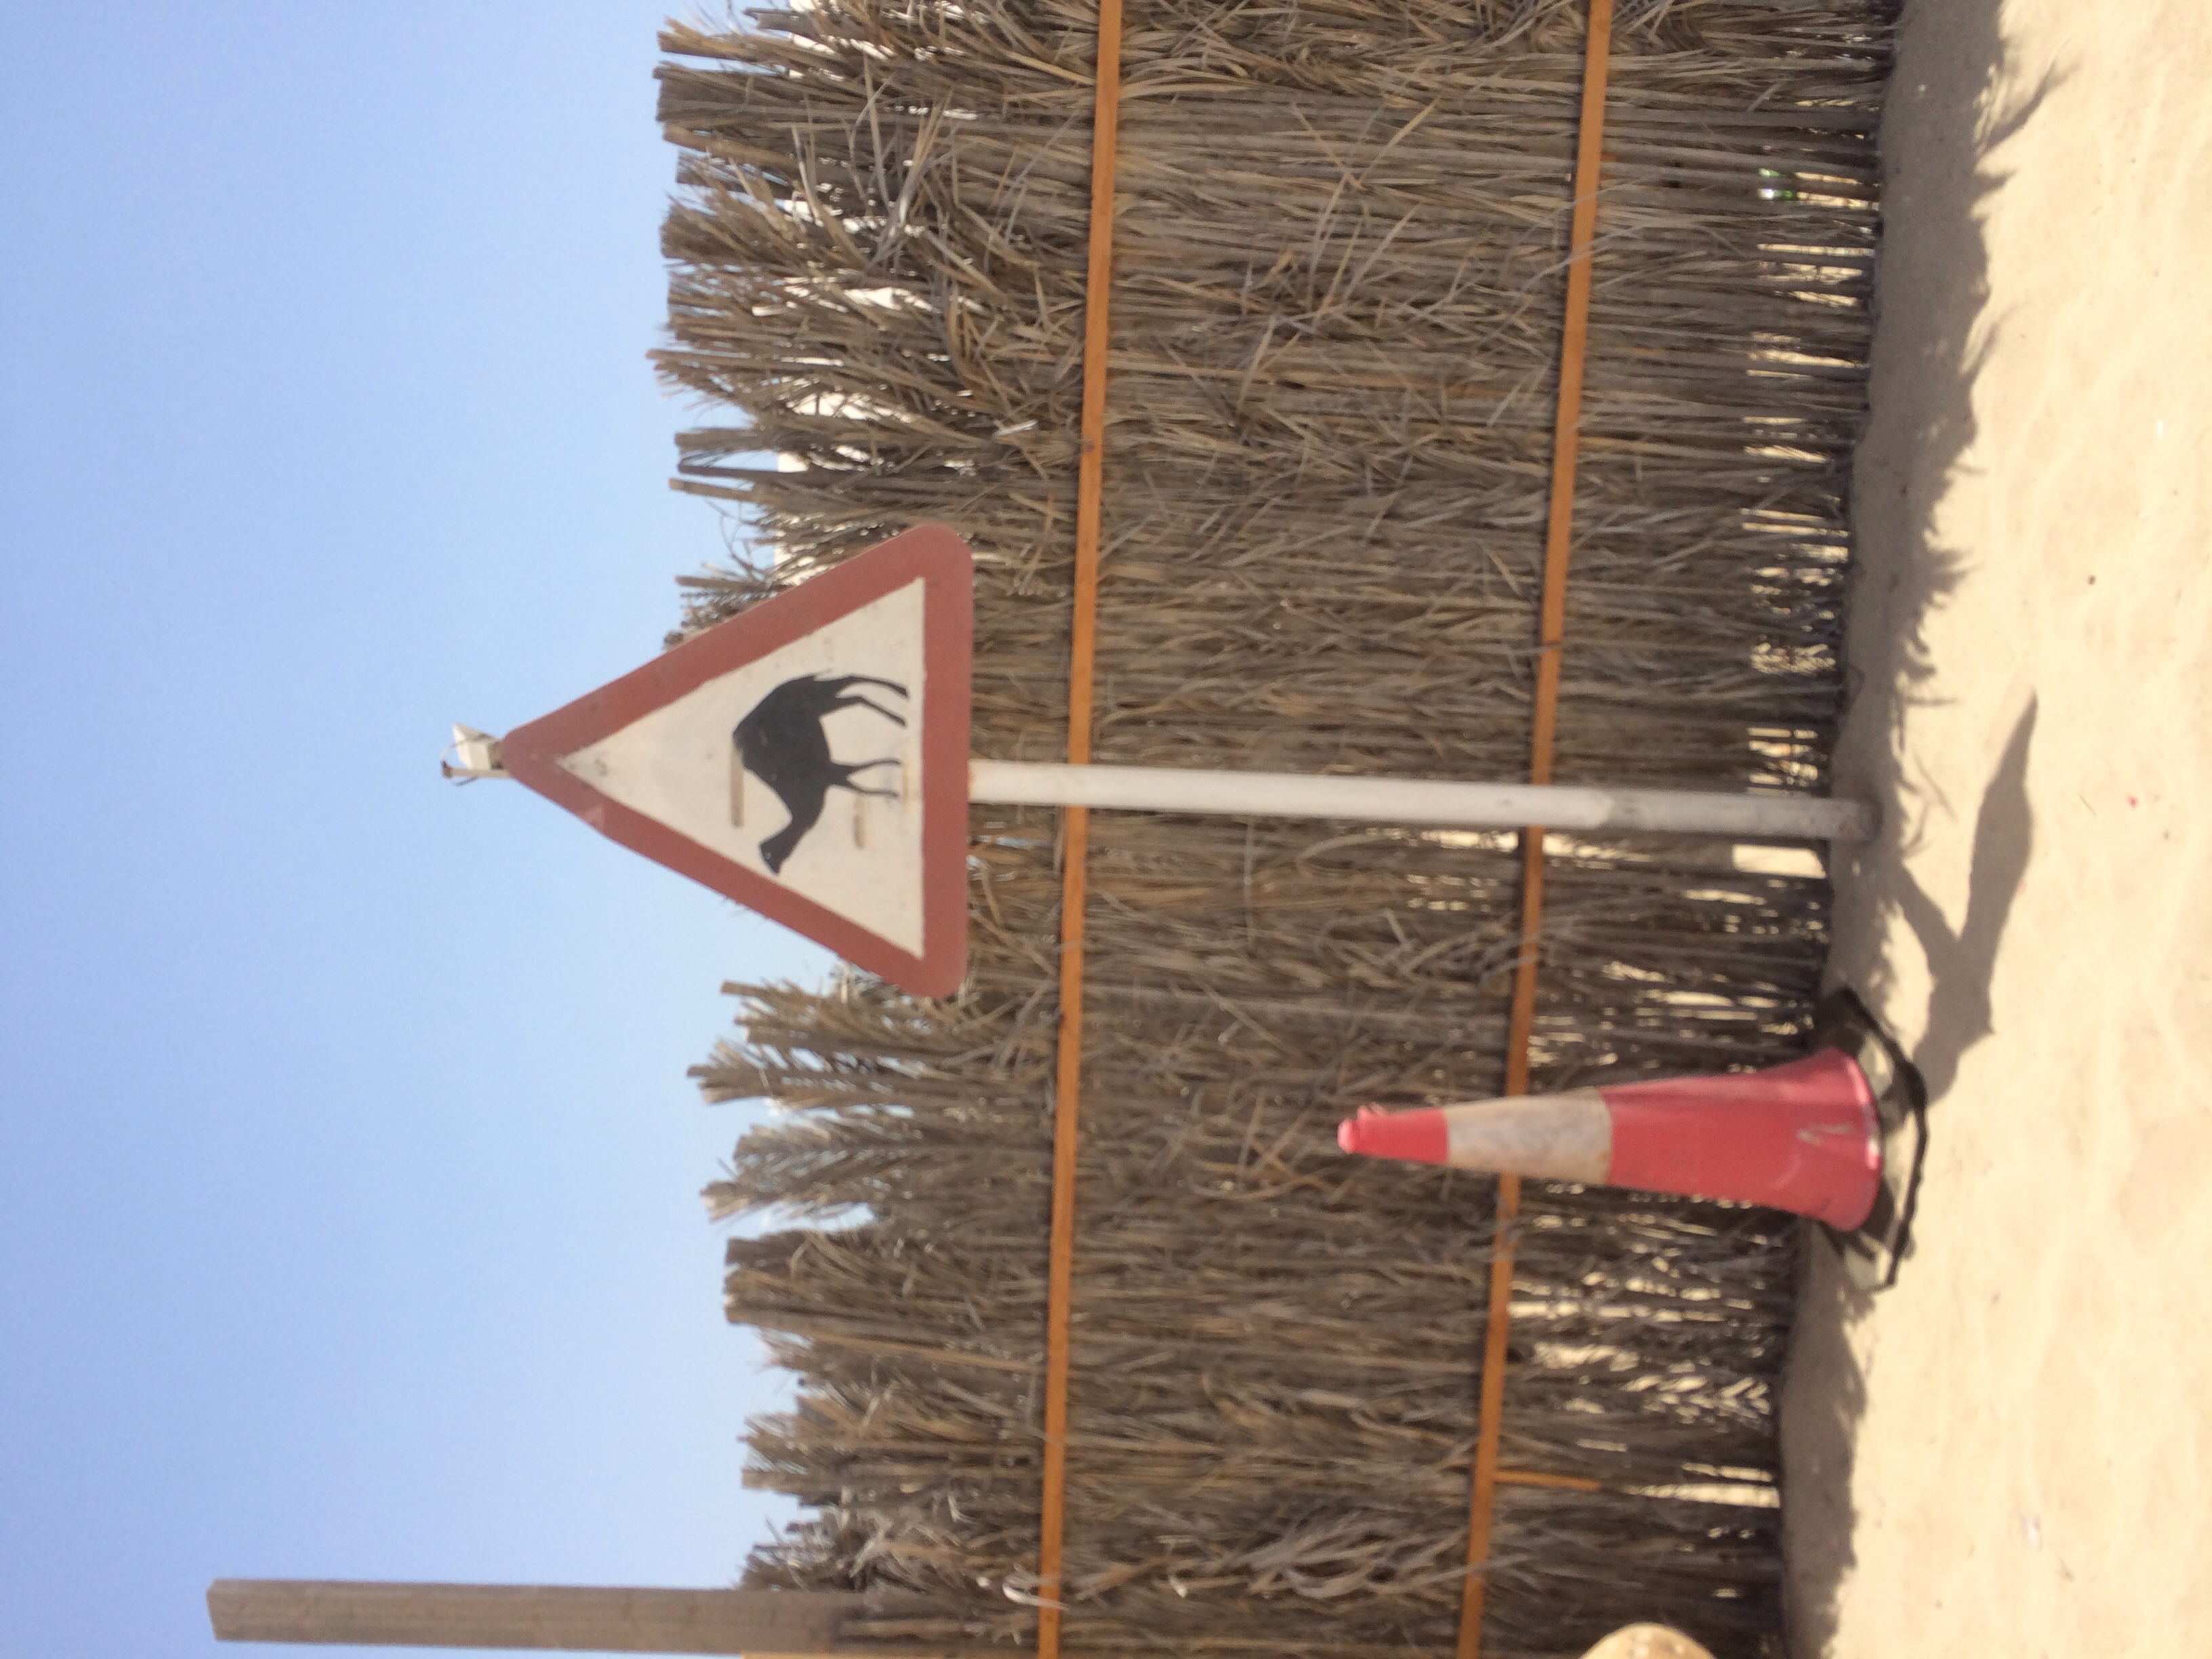 Yield to the camels (duh)